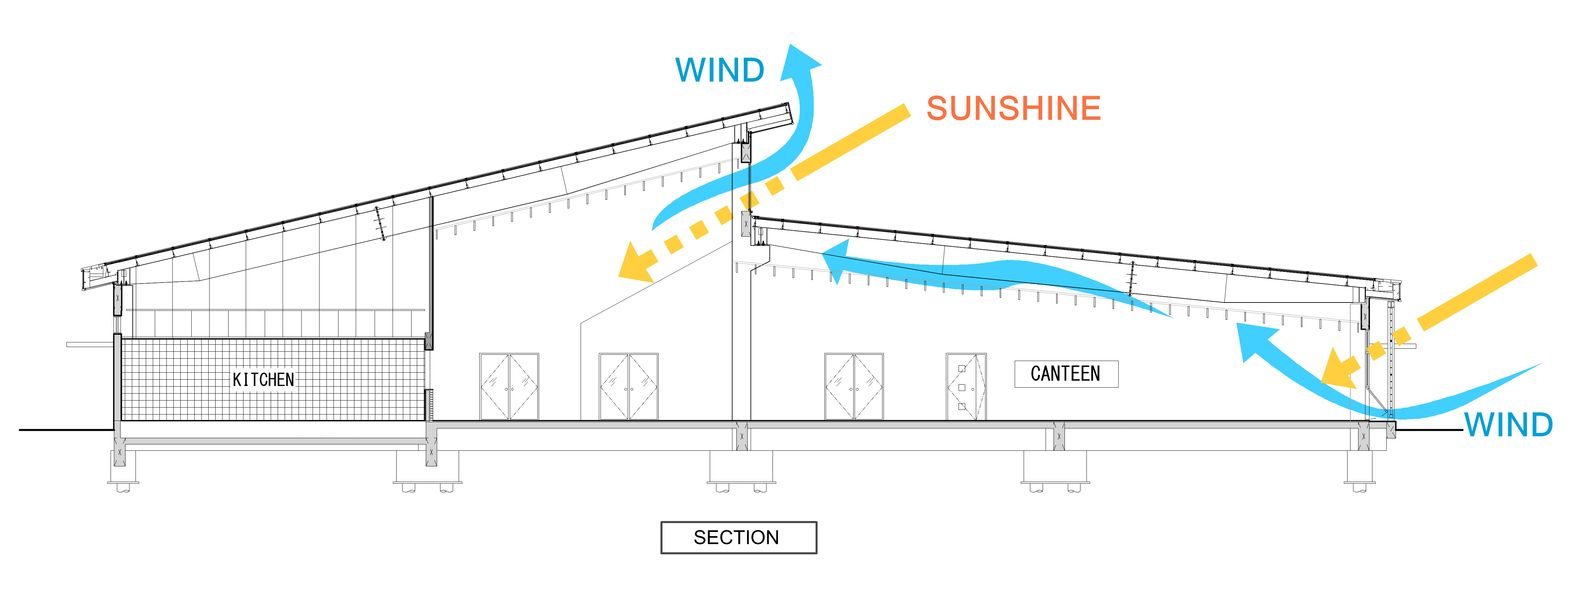 Gallery Of How To Implement Passive Solar Design In Your Architecture Projects 27 Passive Solar Design Solar Design Passive Solar